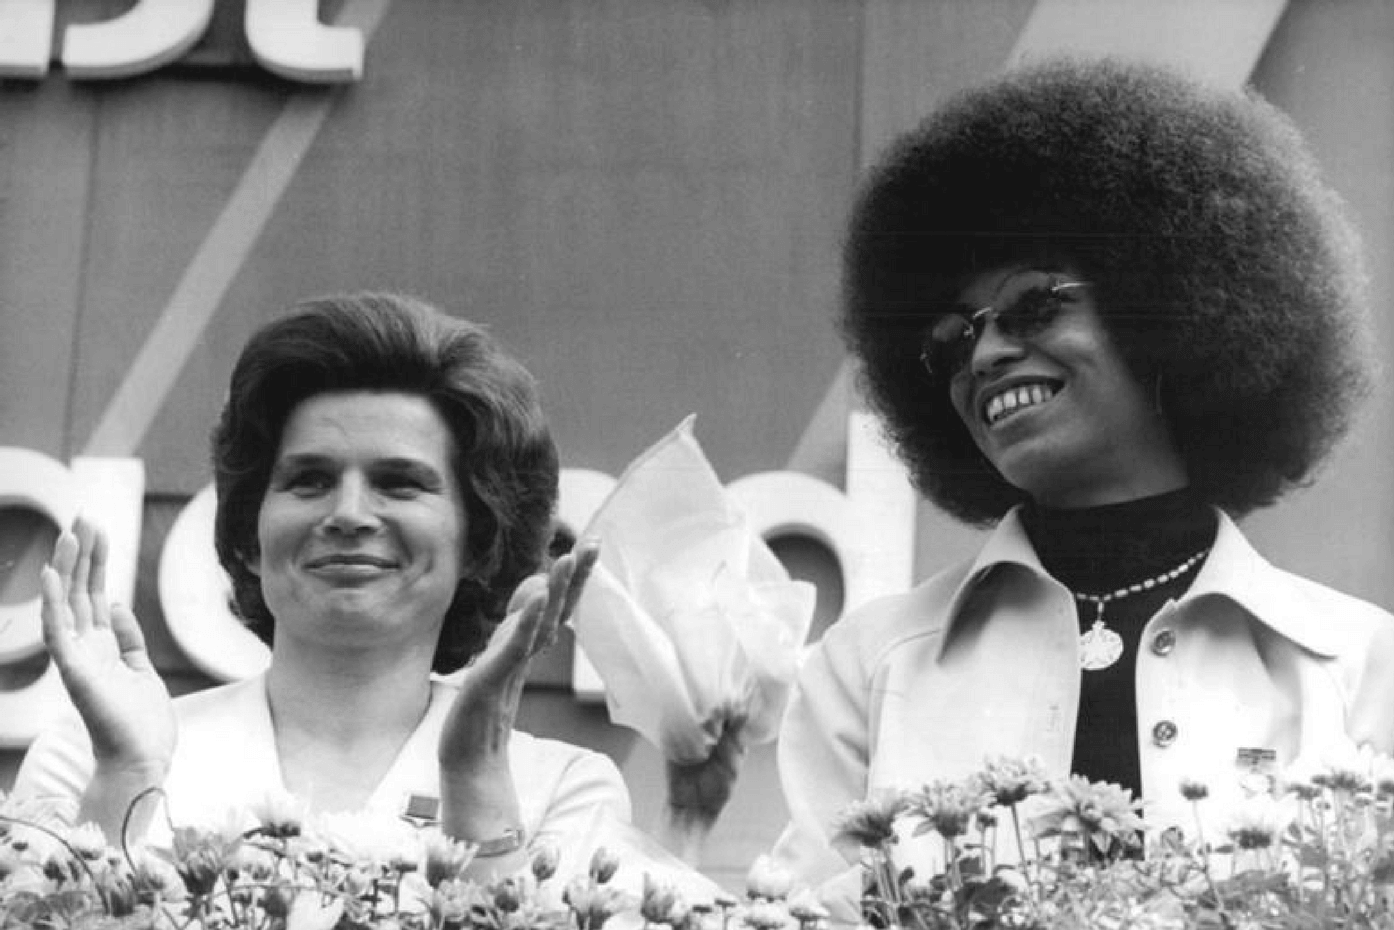 Angela Davis helped launch the rise of the afro. Here she is pictured with Russian astronaut Valentina Tereshkova in 1973.